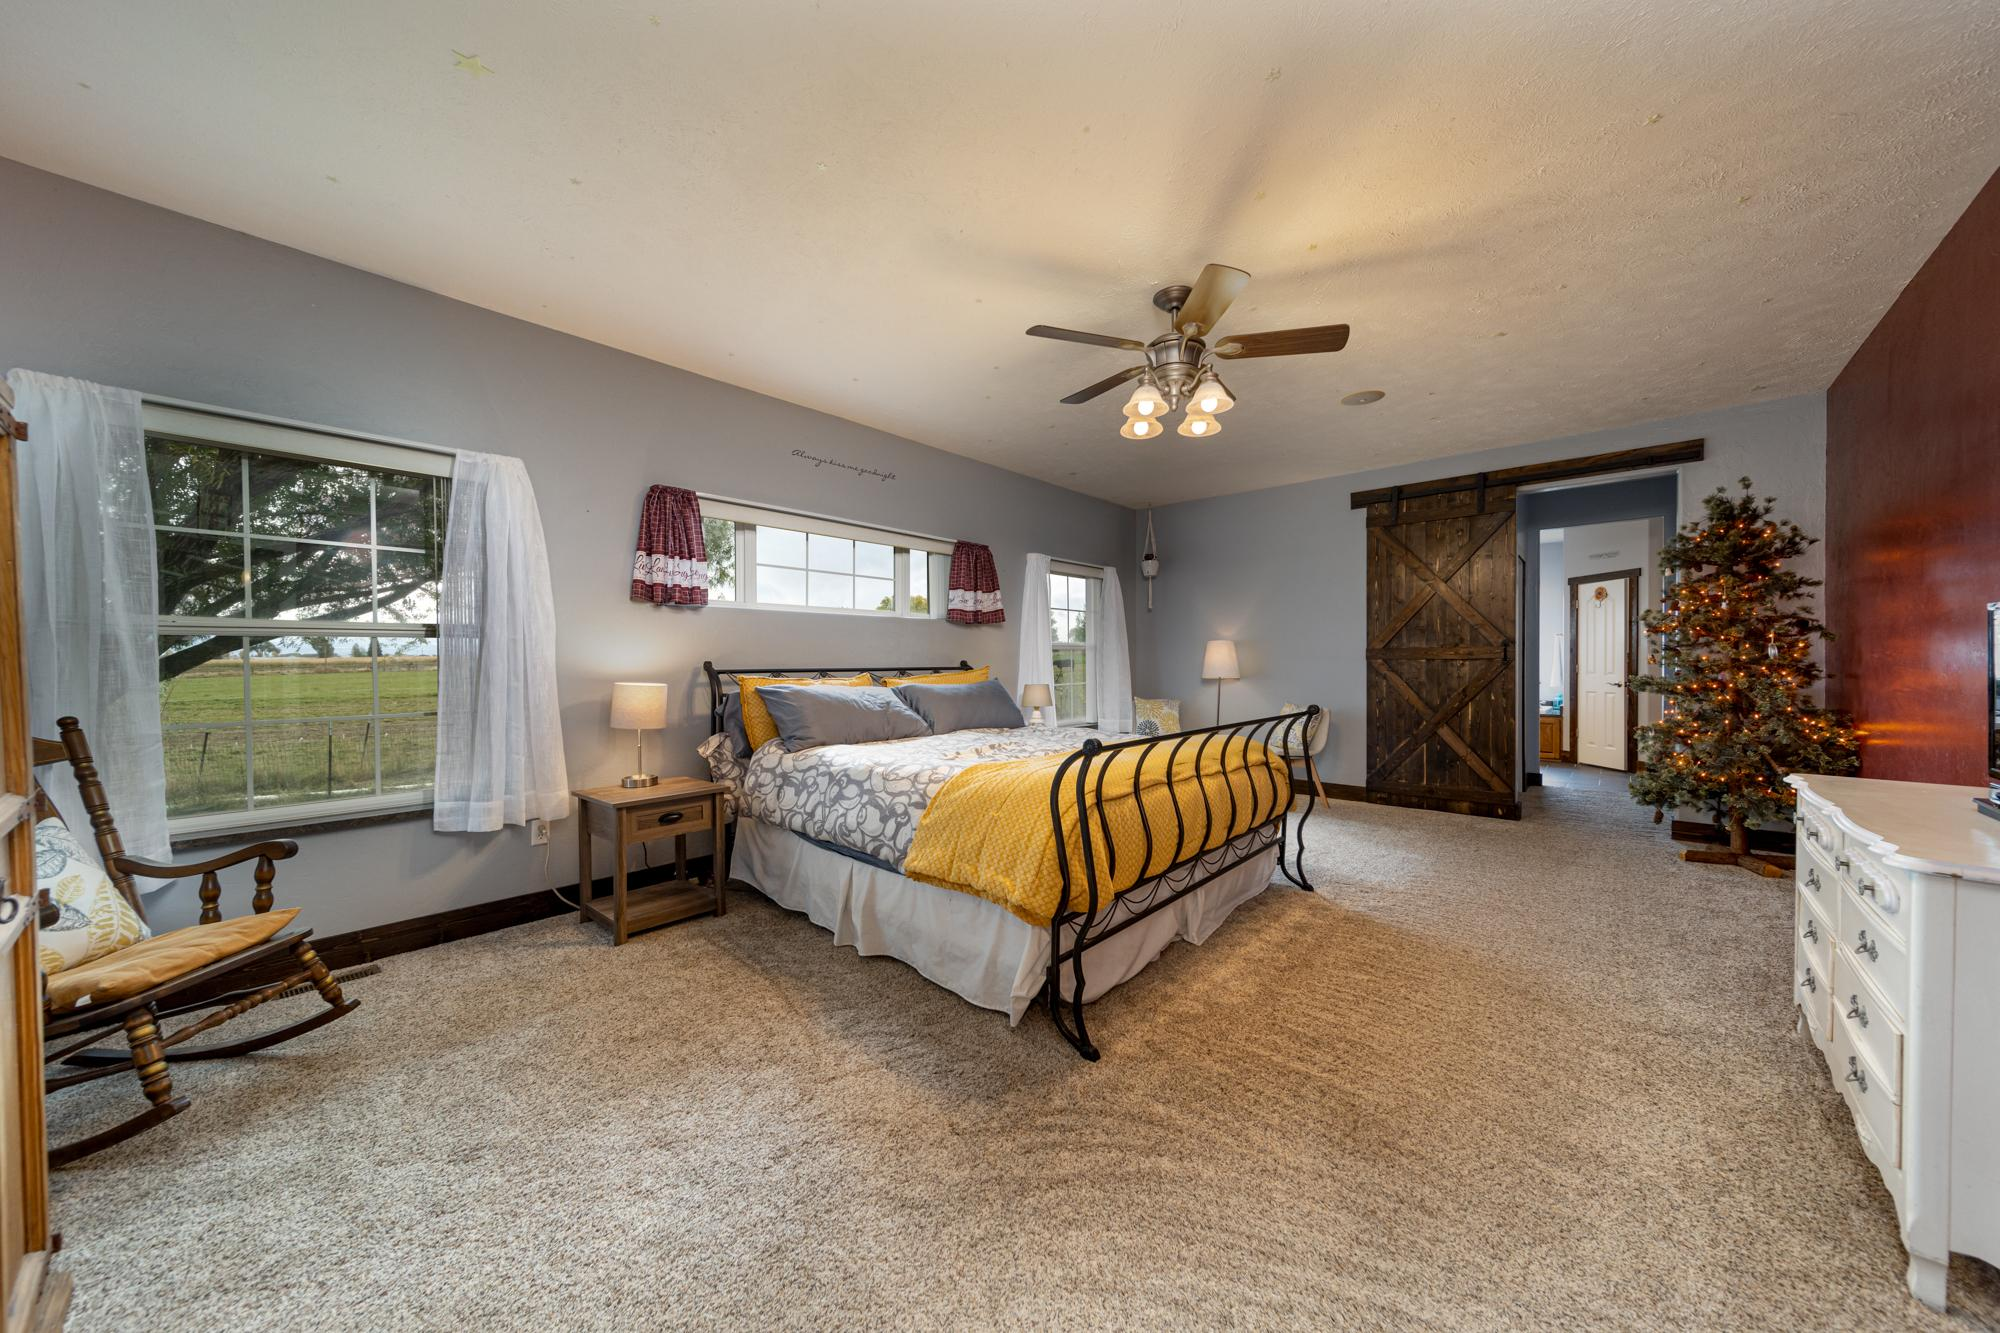 Main Bedroom with Ceiling Fan - 12703 6100 Rd Montrose, CO 81403 - Atha Team Country Real Estate